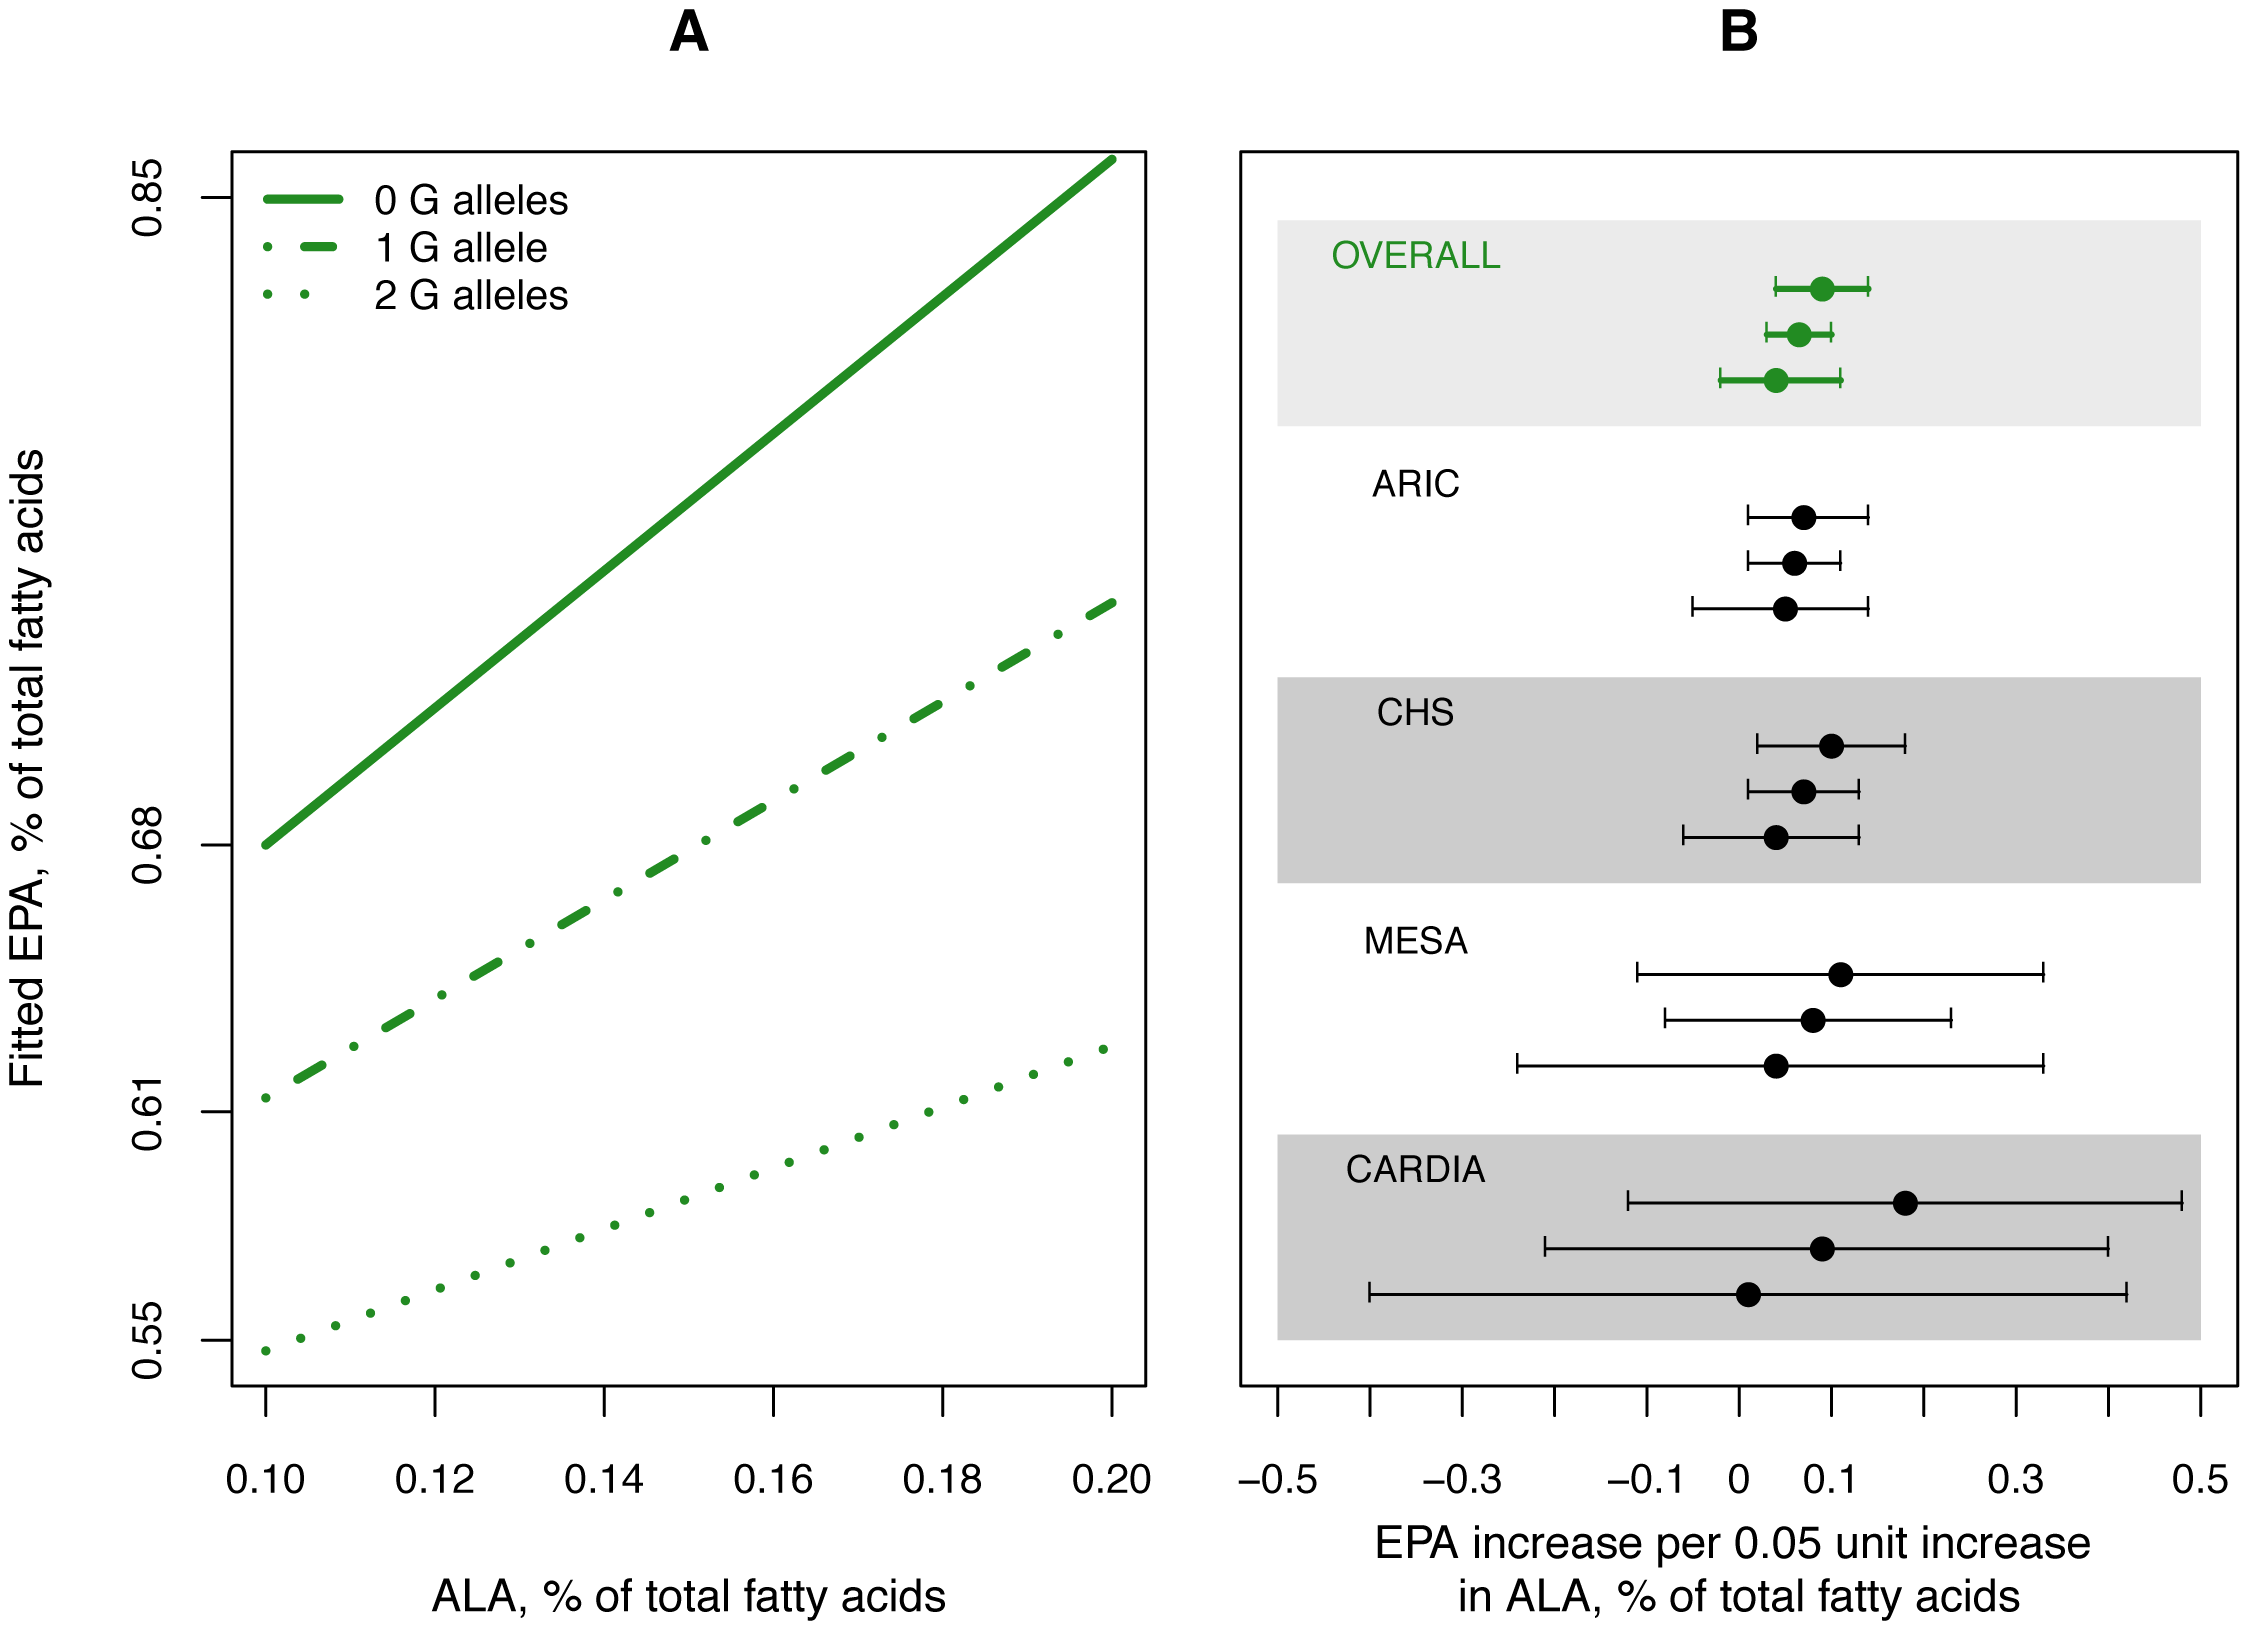 Influence of variation in rs1535 on the estimated association of plasma phospholipid ALA levels with EPA levels.